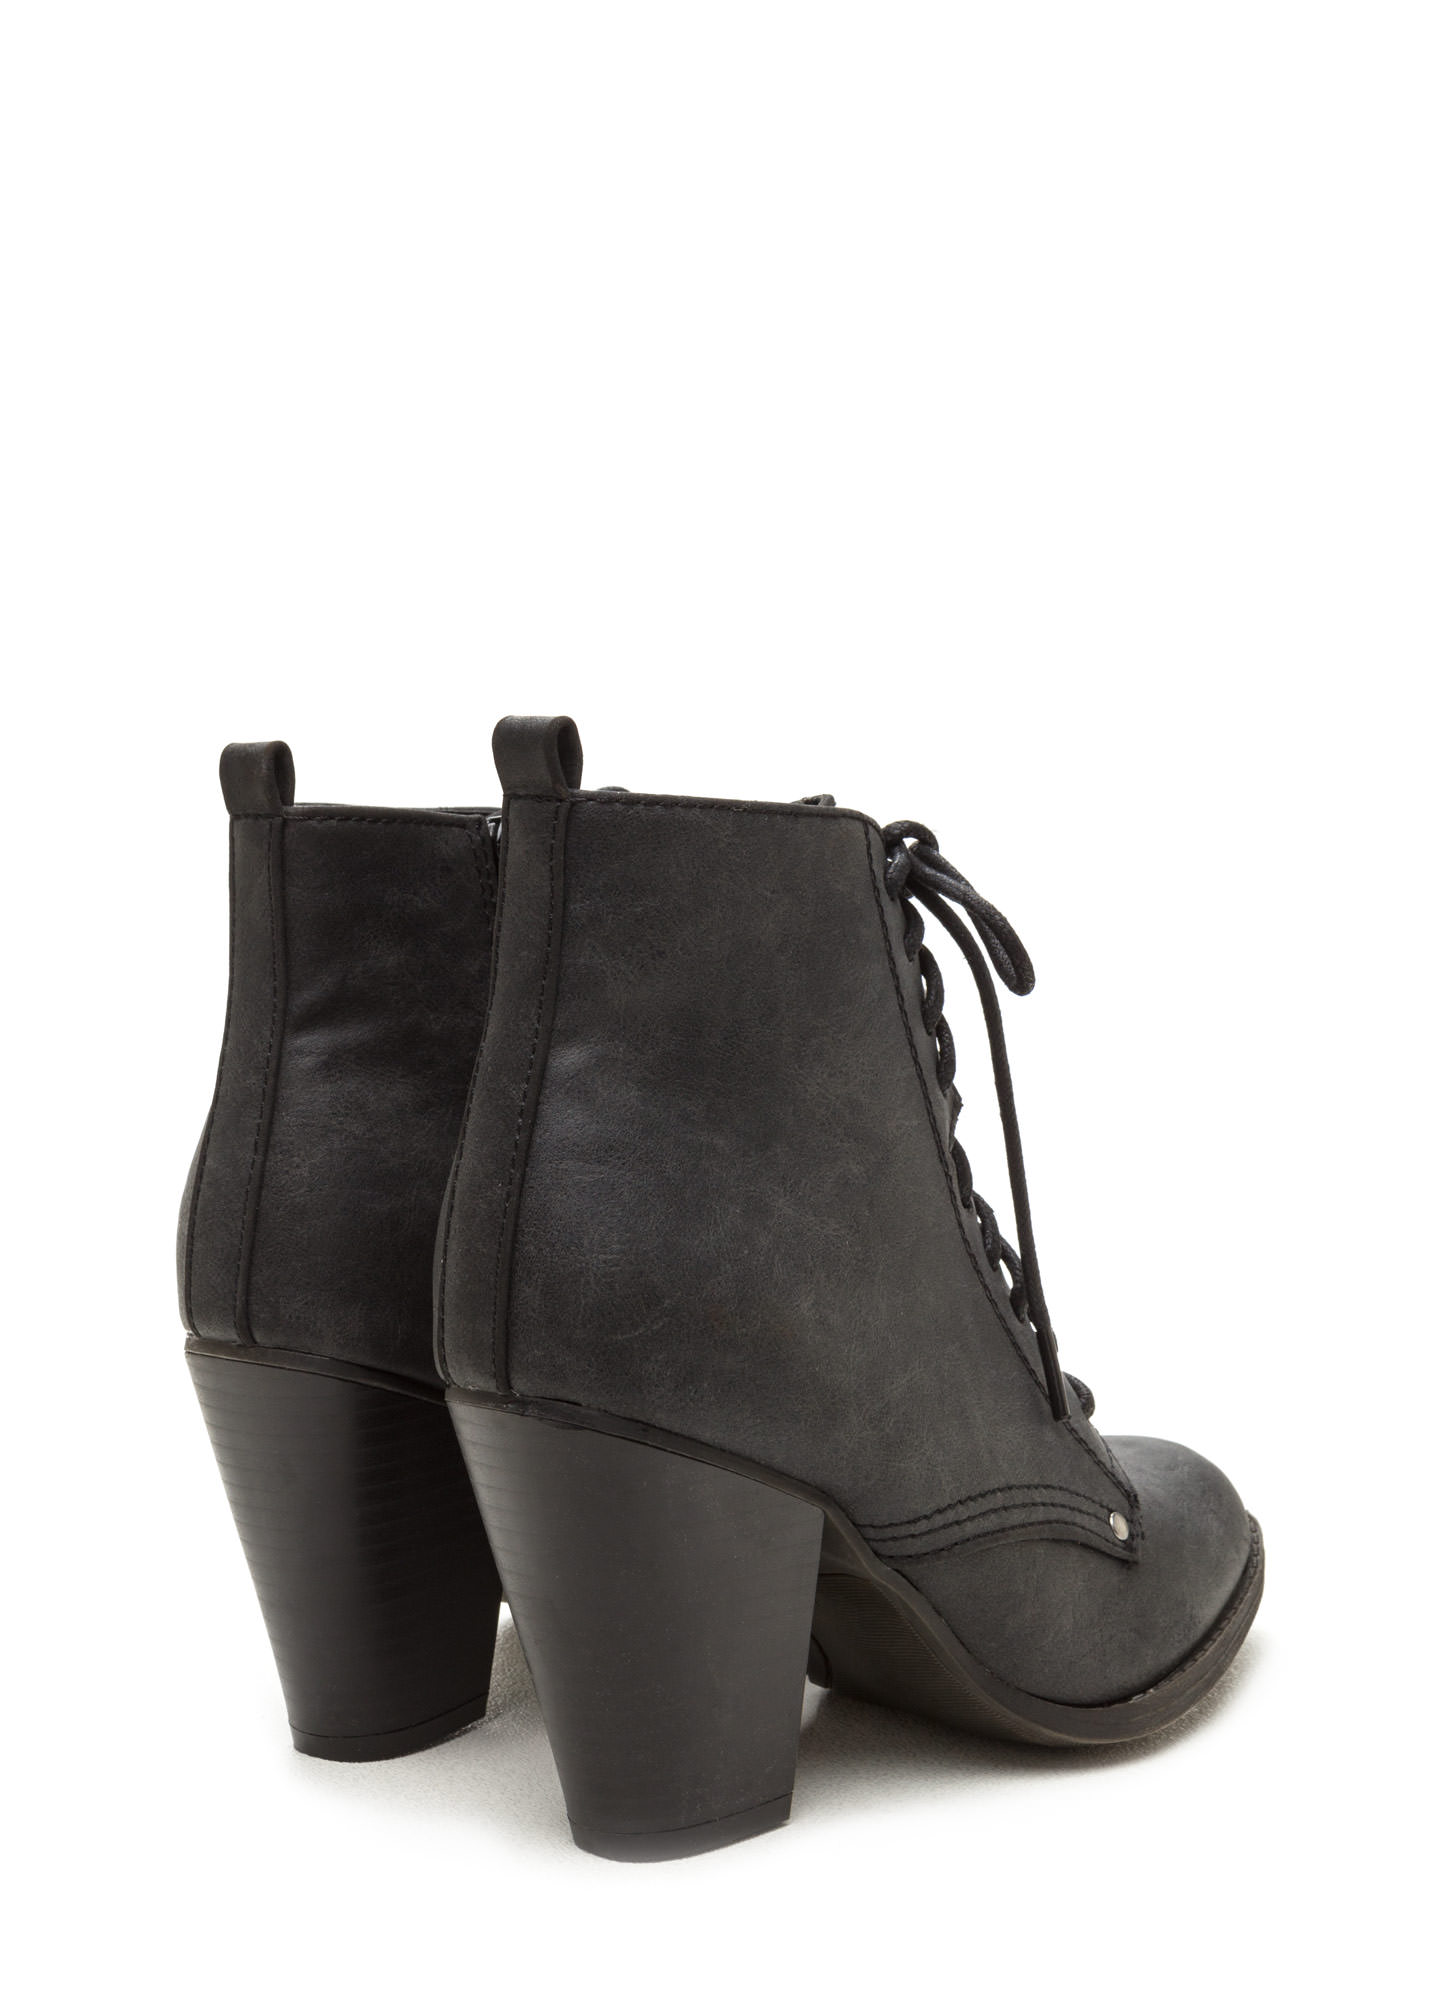 Complete Me Faux Leather Booties BLACK